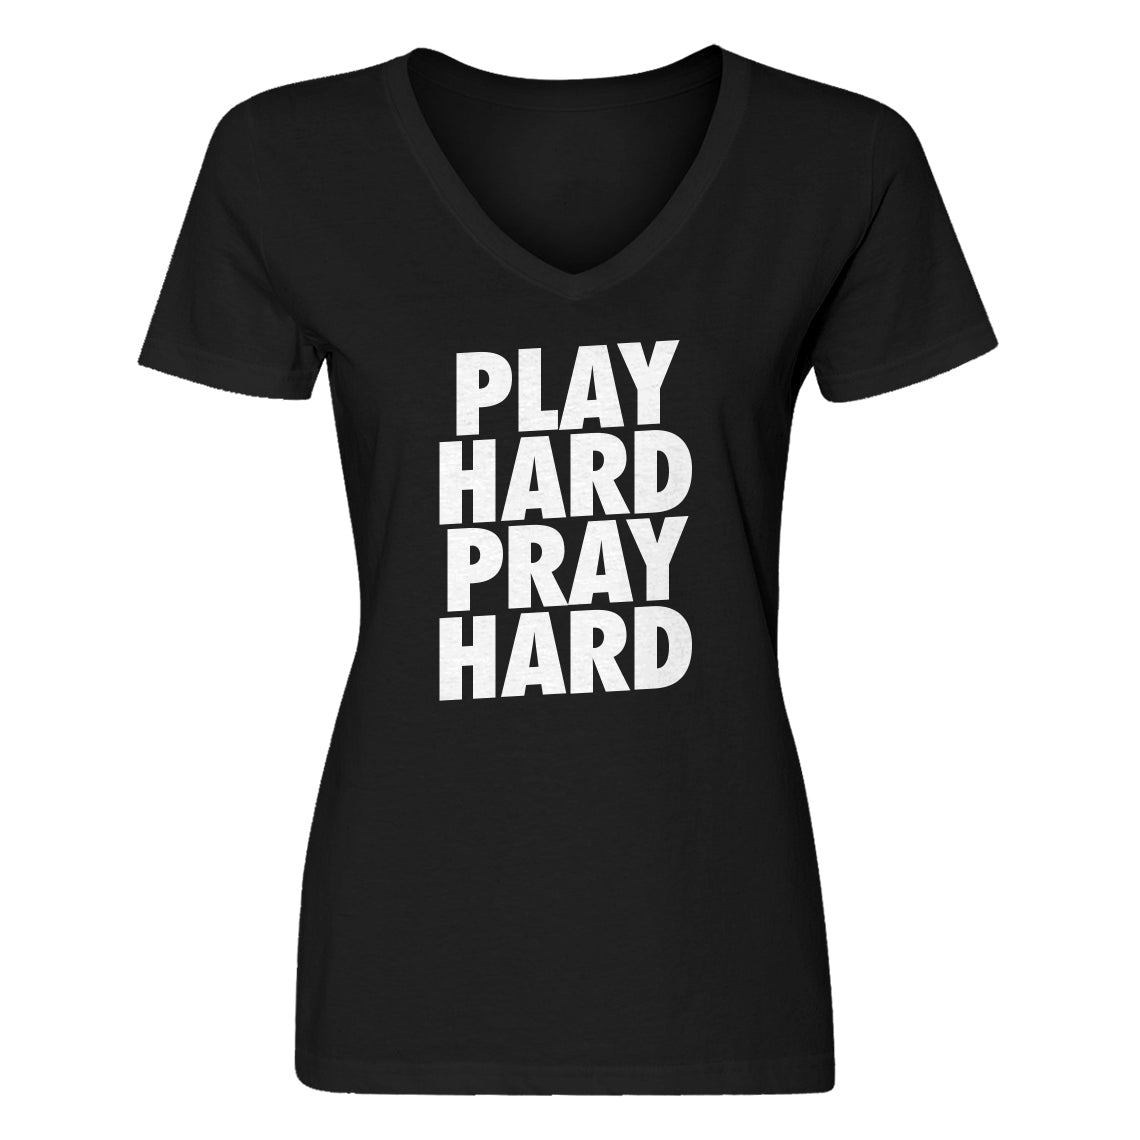 Womens Play Hard Pray Hard Vneck T-shirt